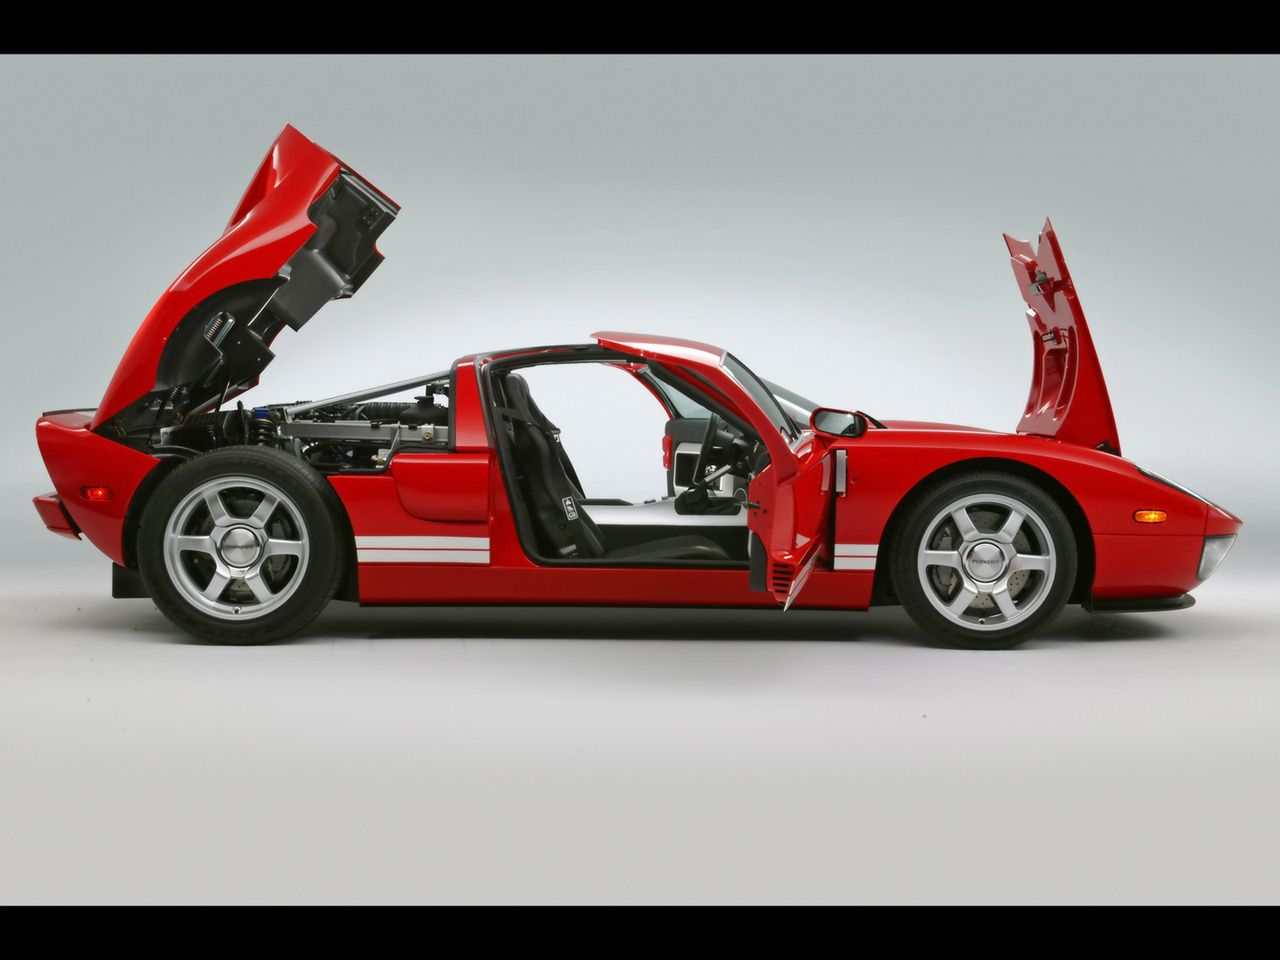 2005 Ford Gt Red Side Doors Open Ford Gt Ford Gt 2005